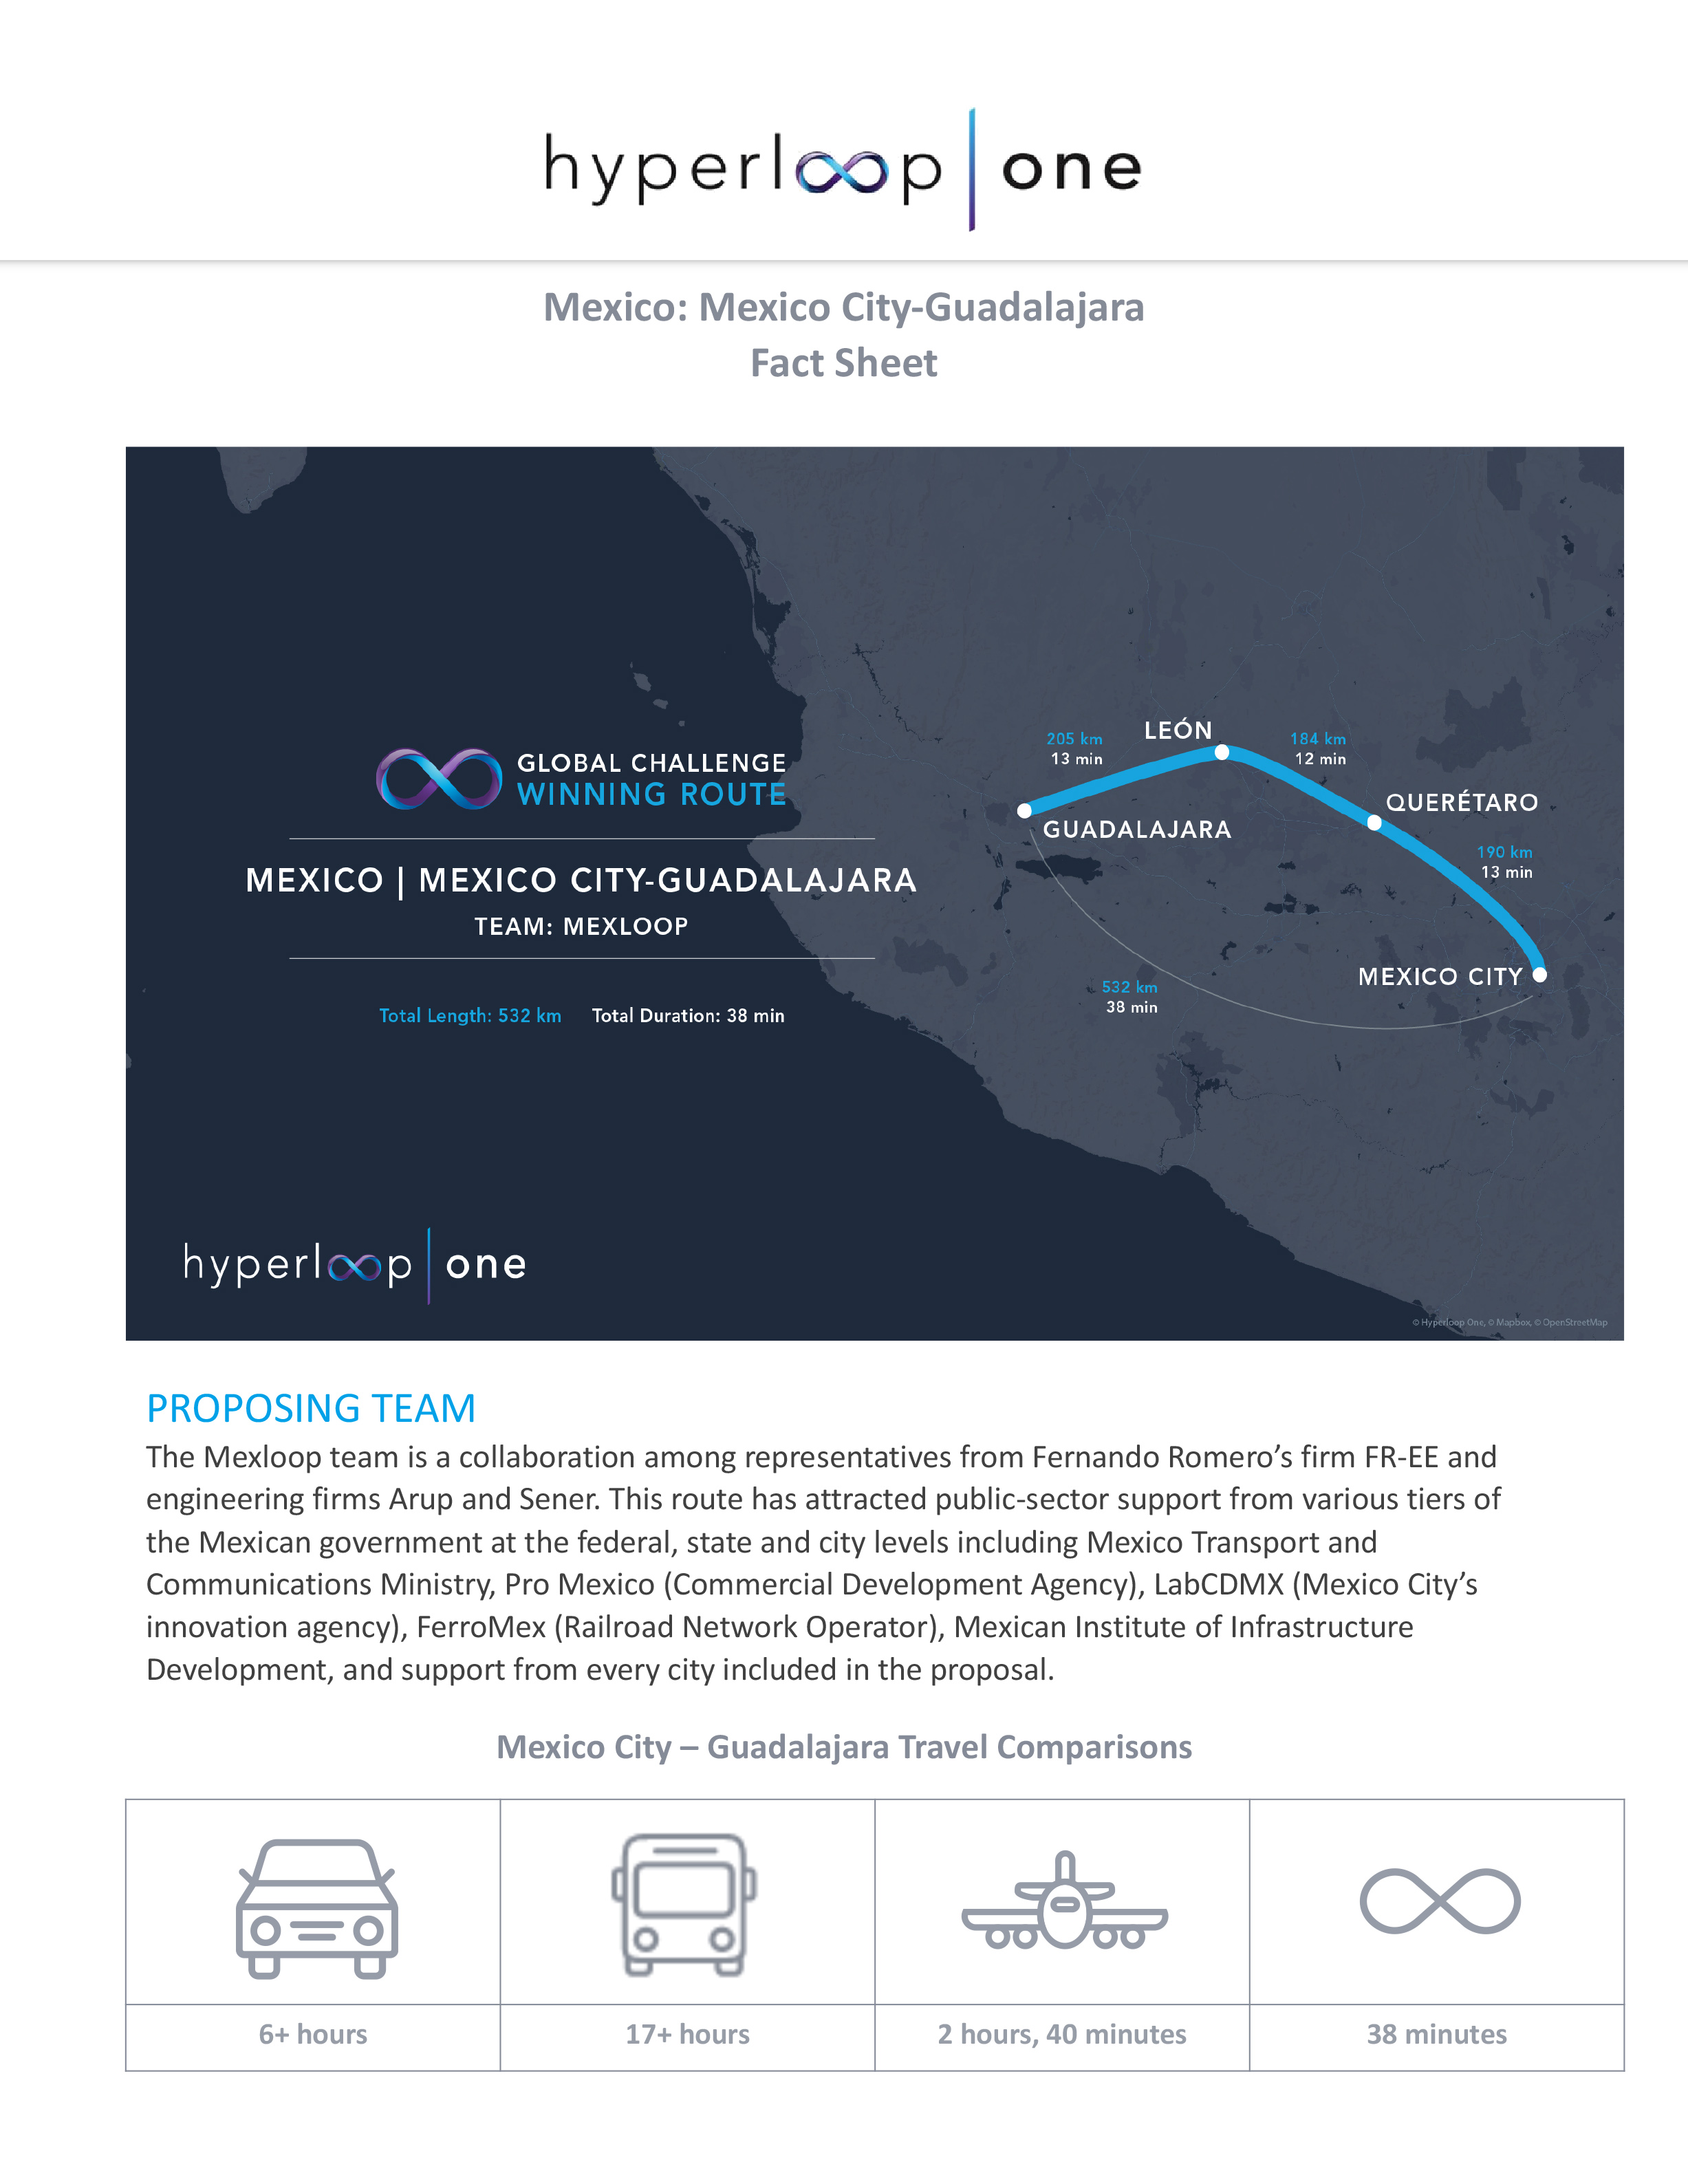 10 Winning Routed Revealed — Hyperloop One Challenge